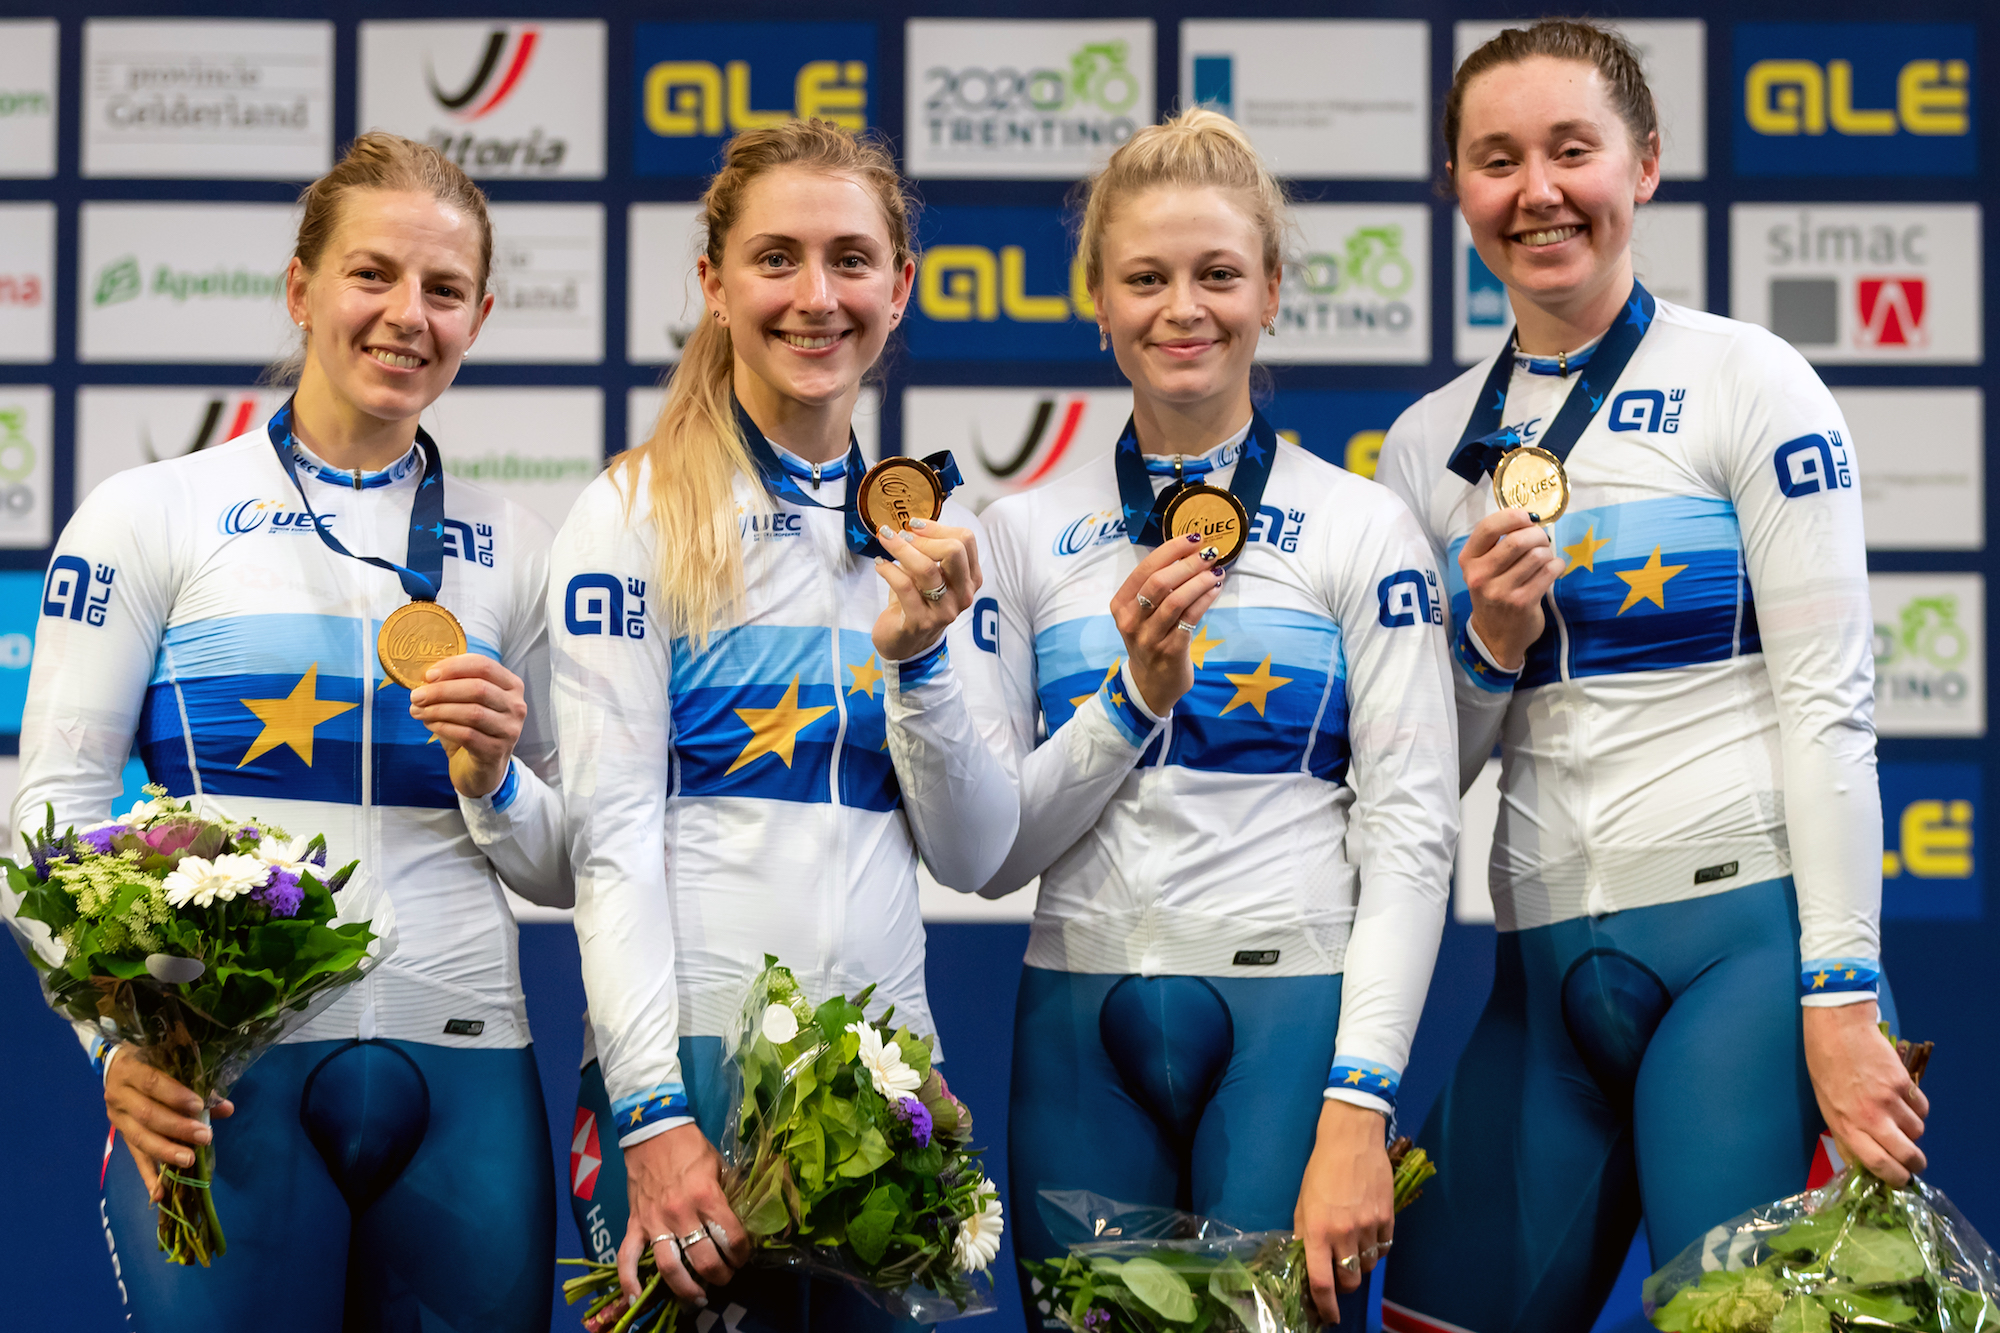 Britain strike gold again in women's team pursuit at UEC European Track Championships 2019